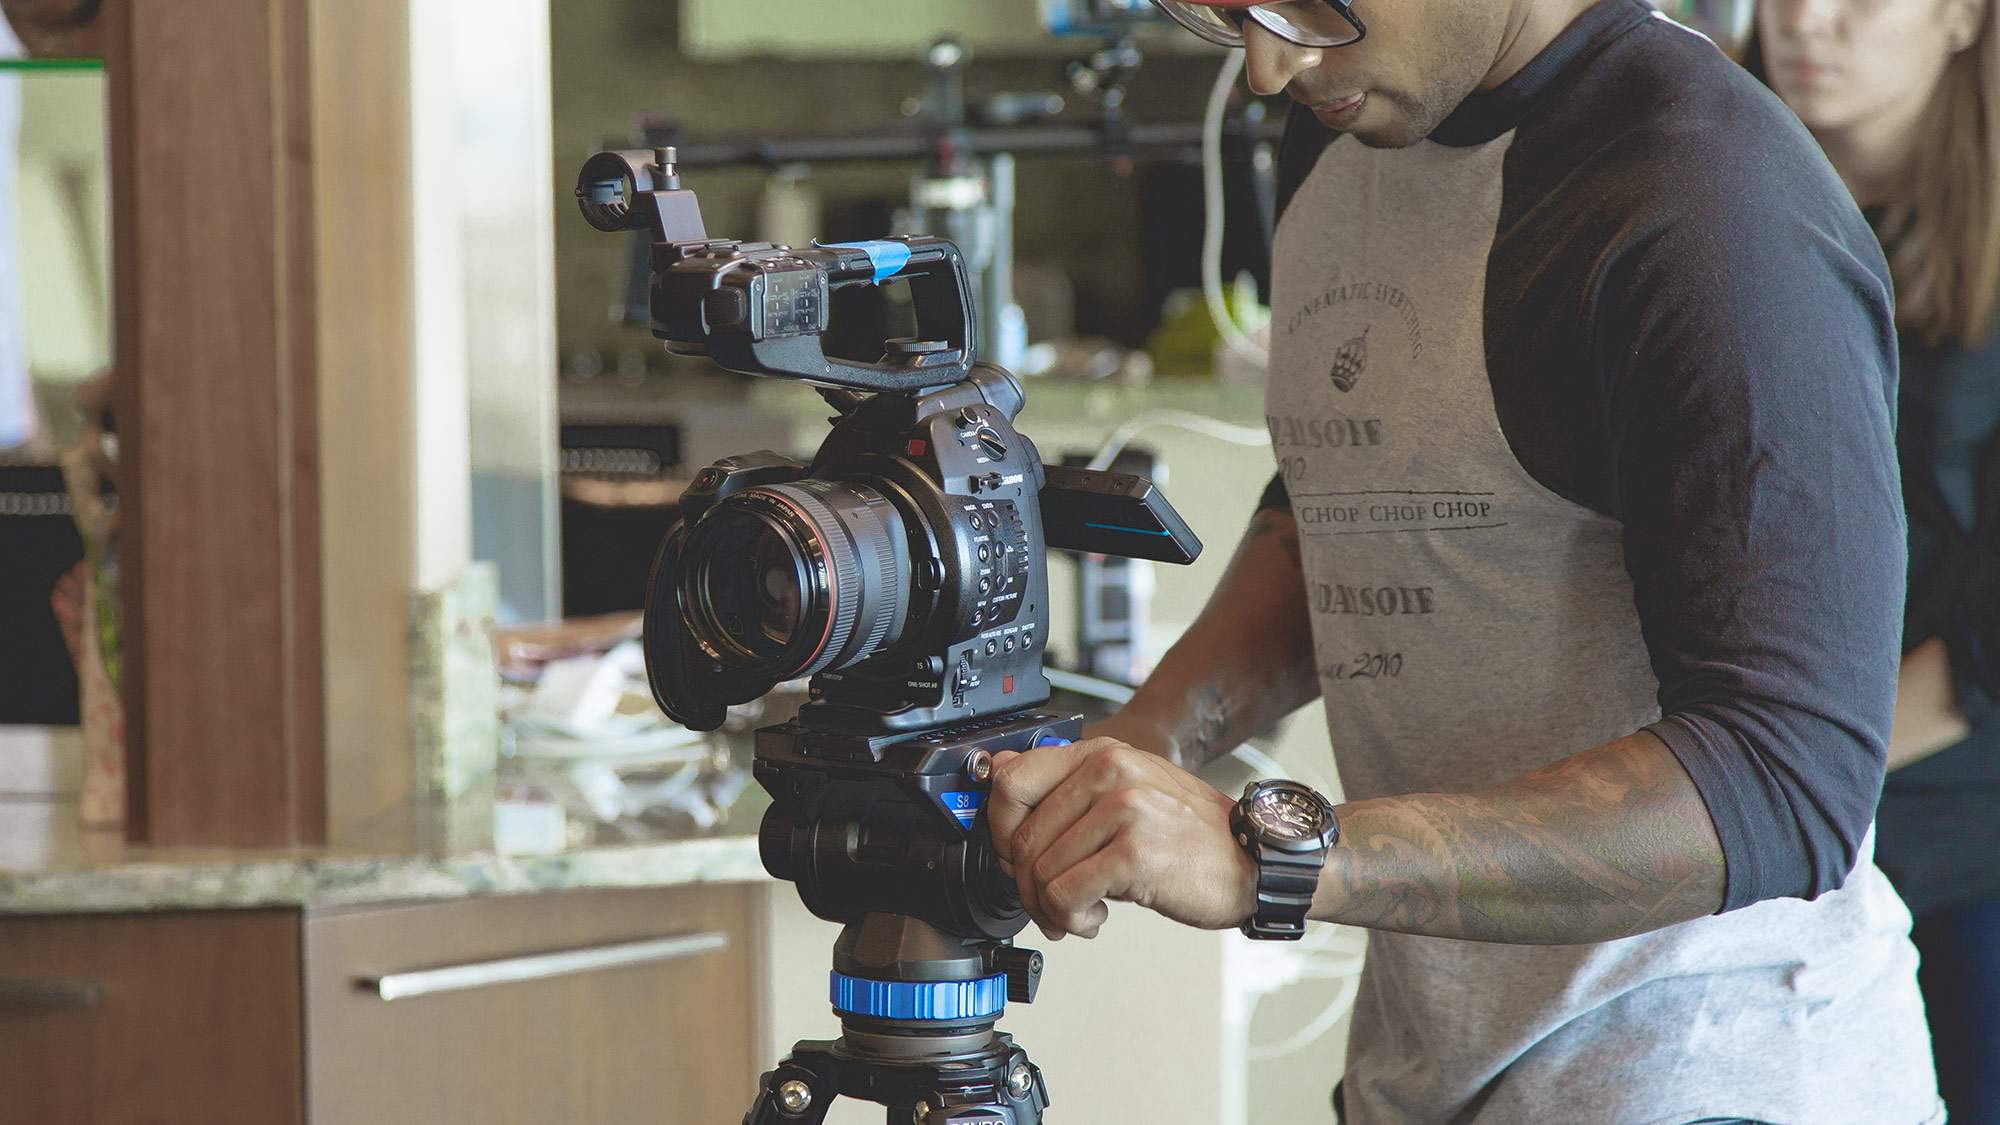 Streaming Video Jobs are On the Rise